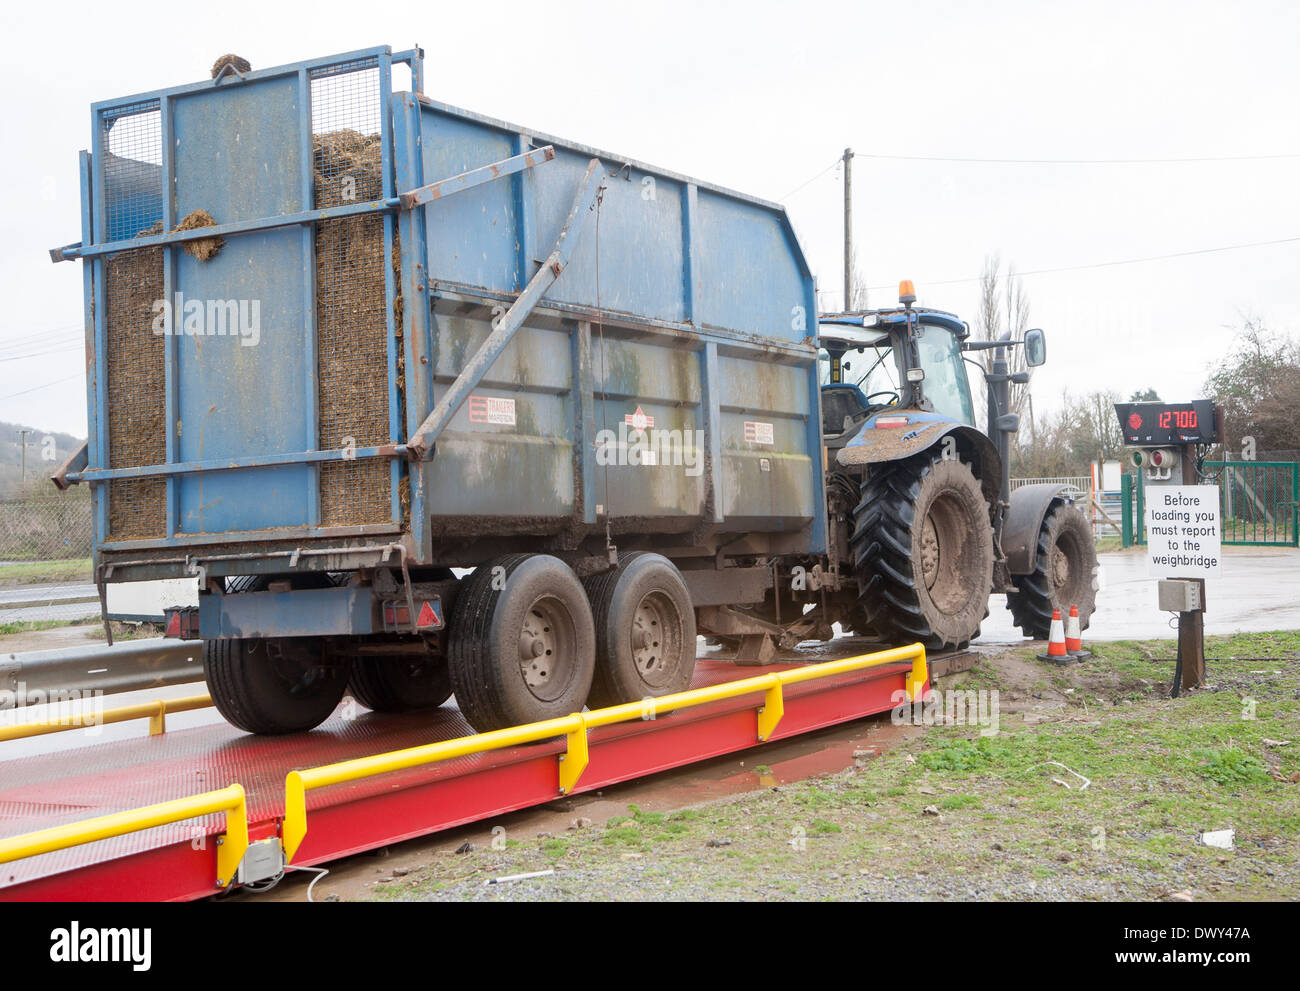 Tractor and trailer on a weighbridge weighing its load, UK - Stock Image